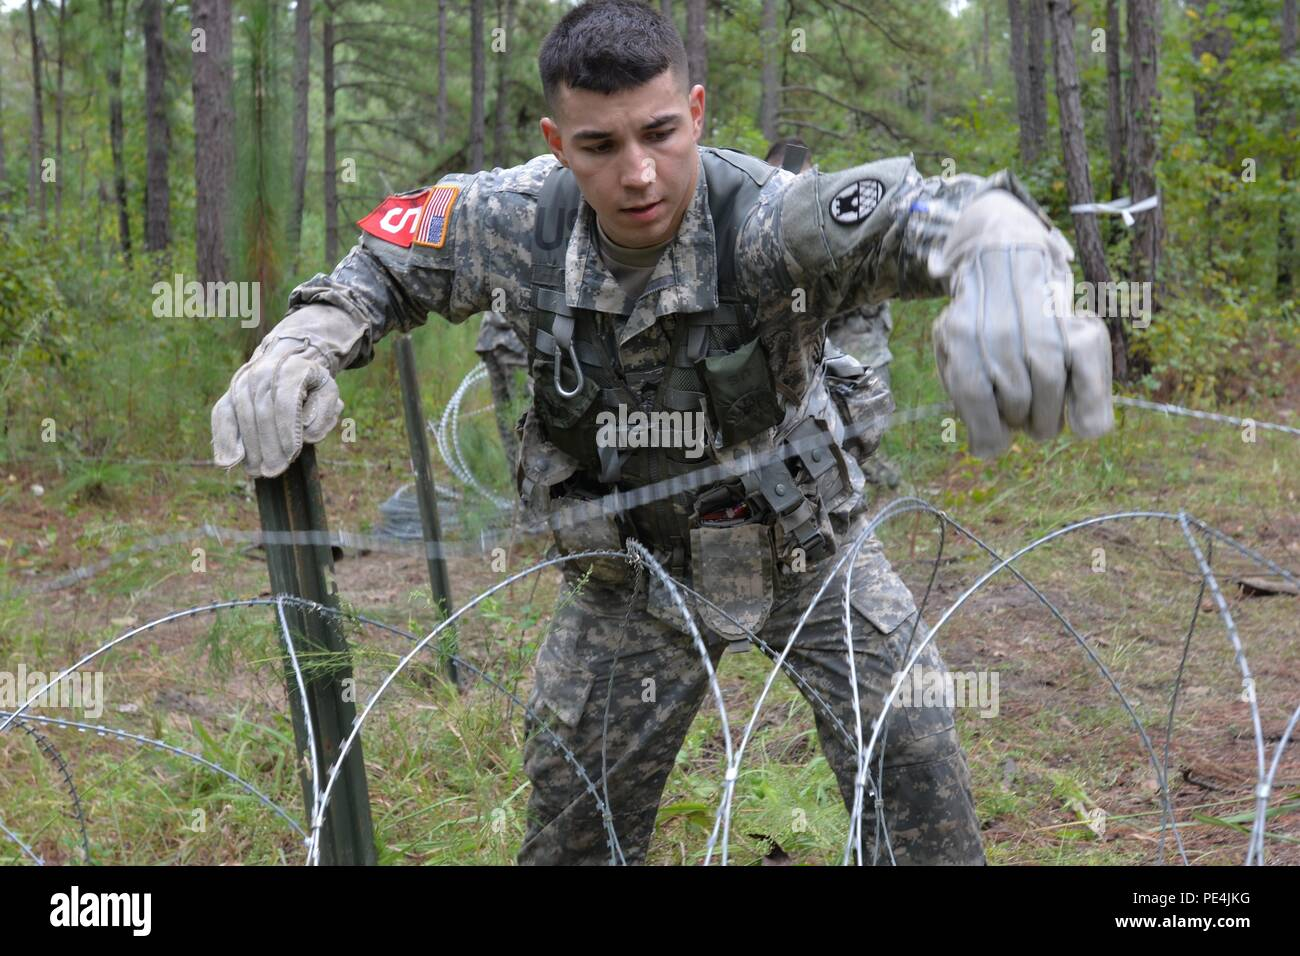 105th Engineer Battalion Stock Photos & 105th Engineer